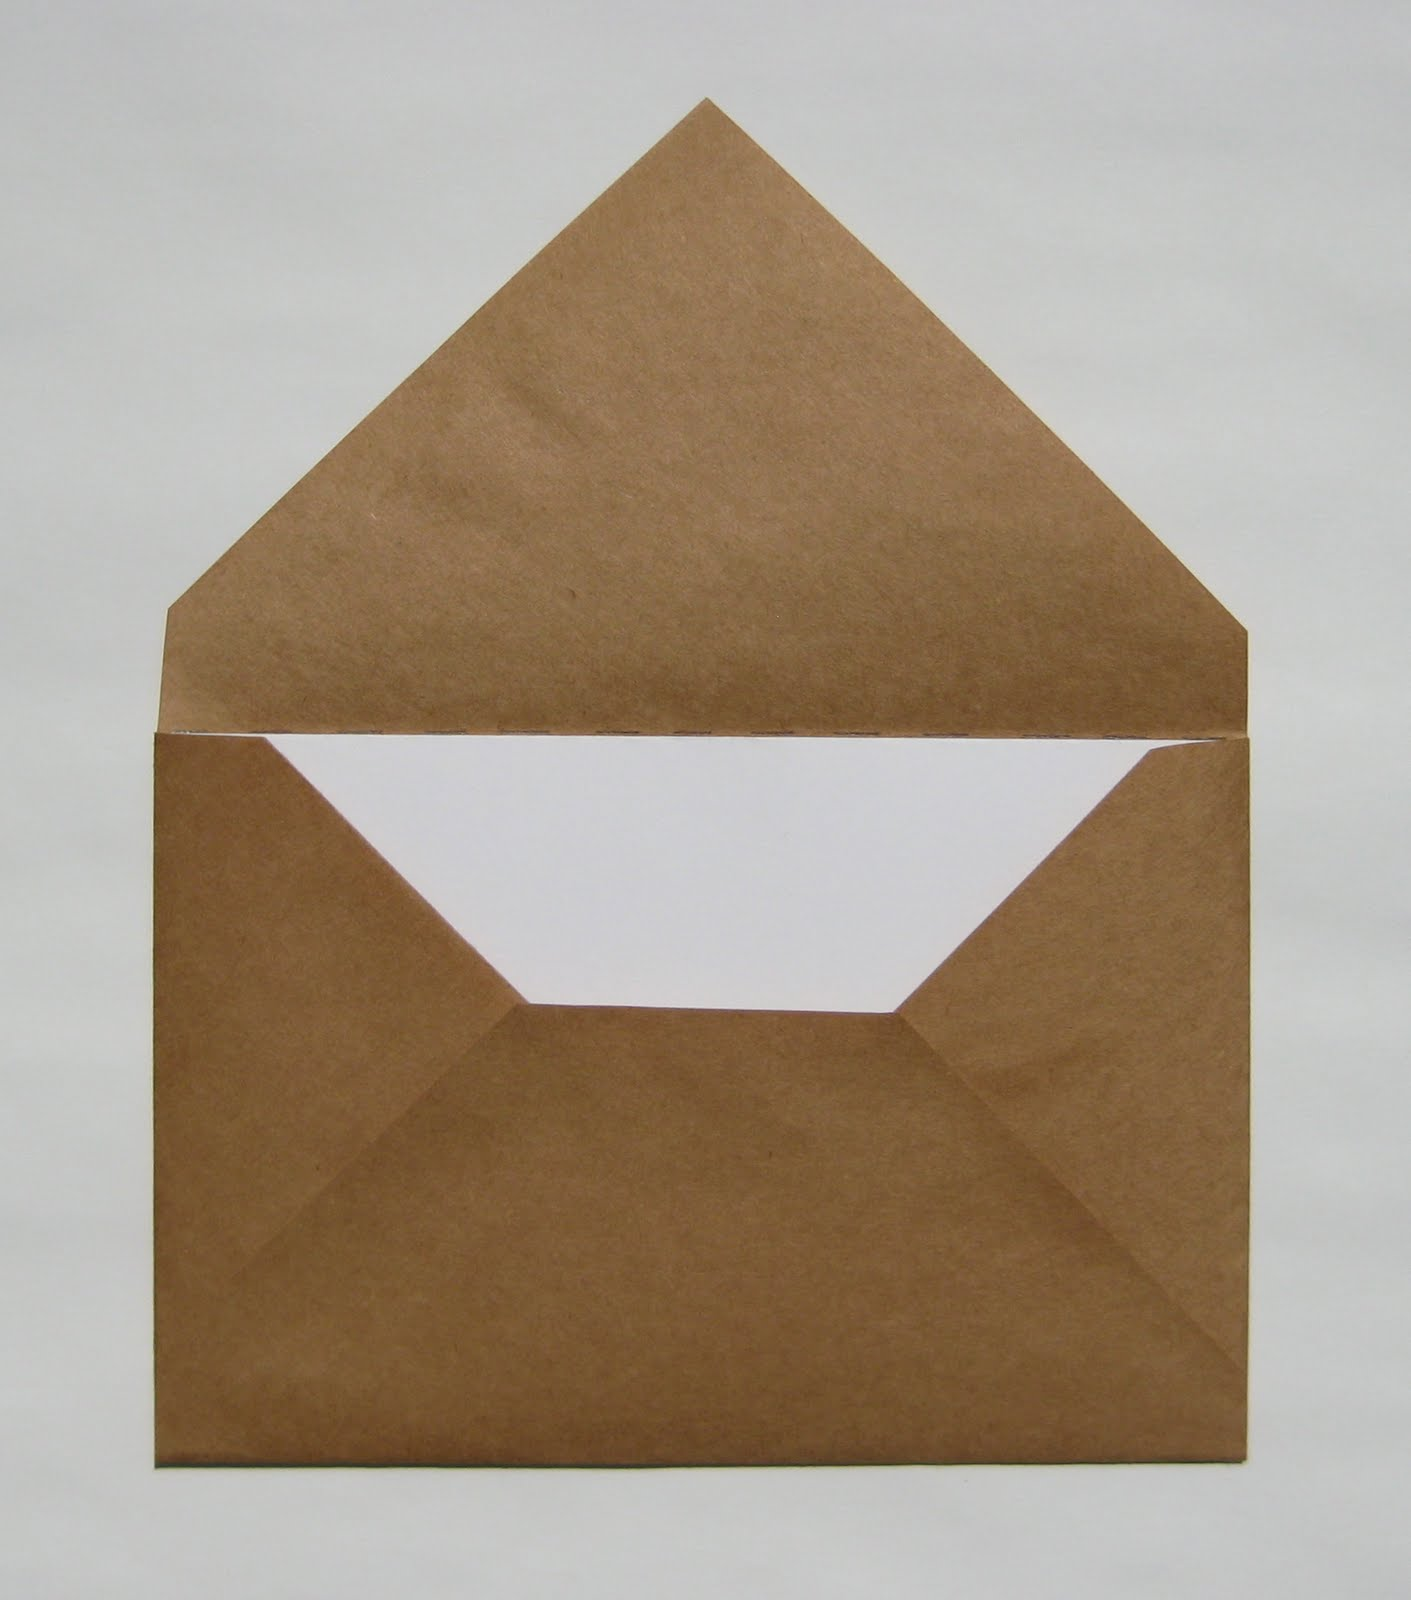 Easy envelopes for handmade cards teachkidsart easy envelopes for handmade cards bookmarktalkfo Images